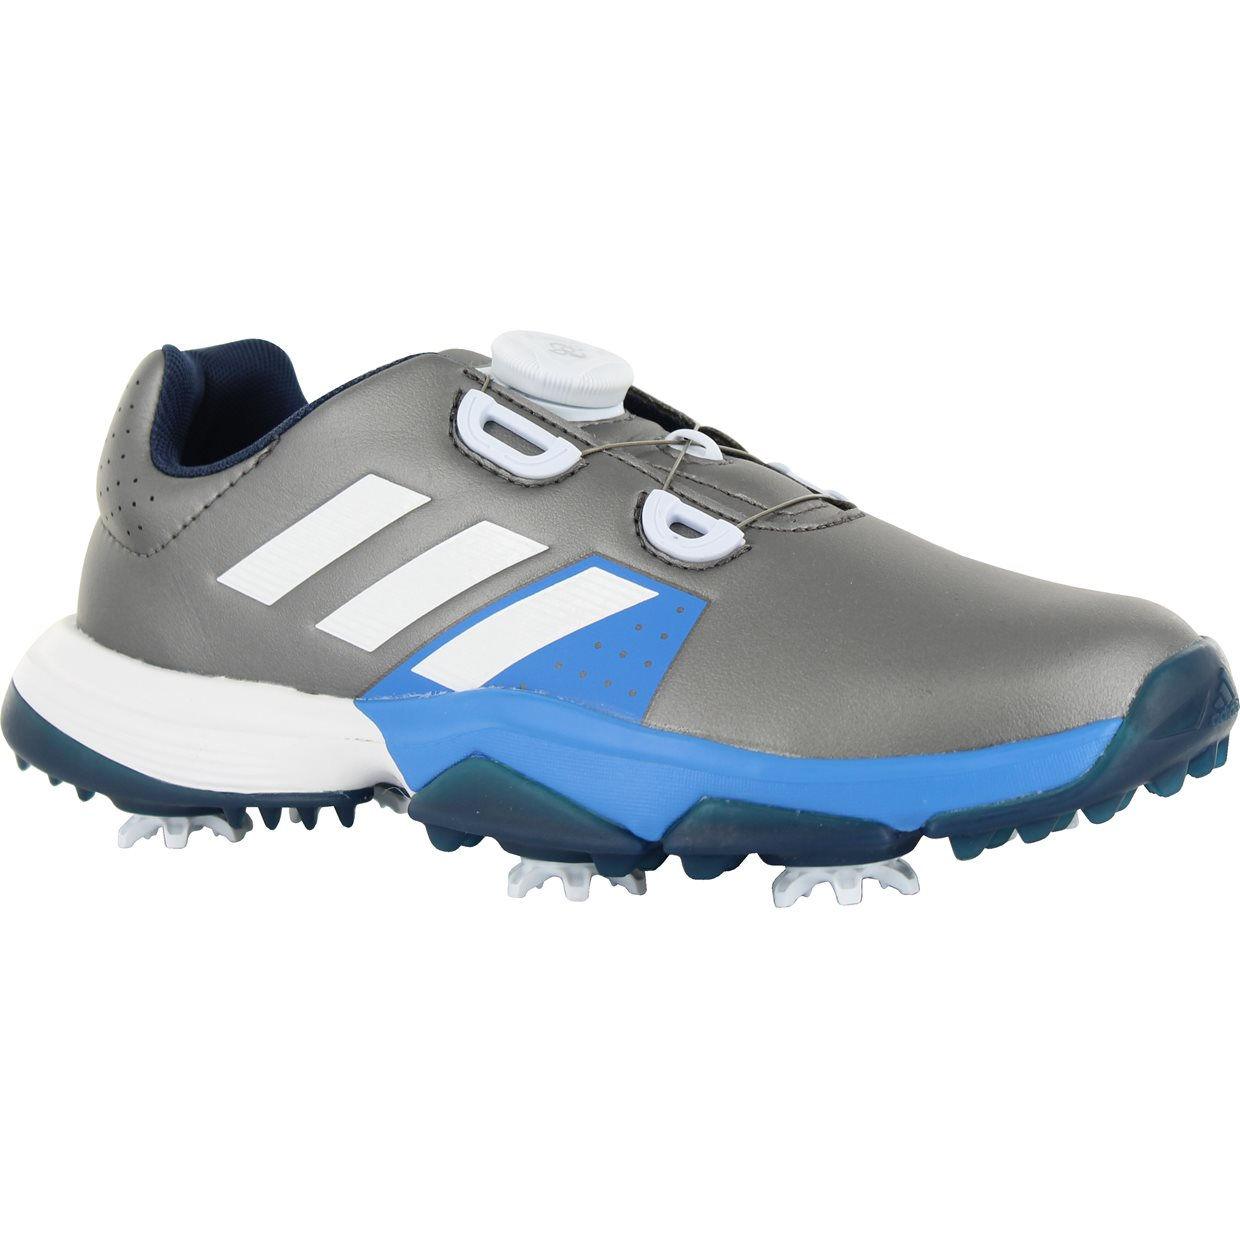 Ping Golf Shoes